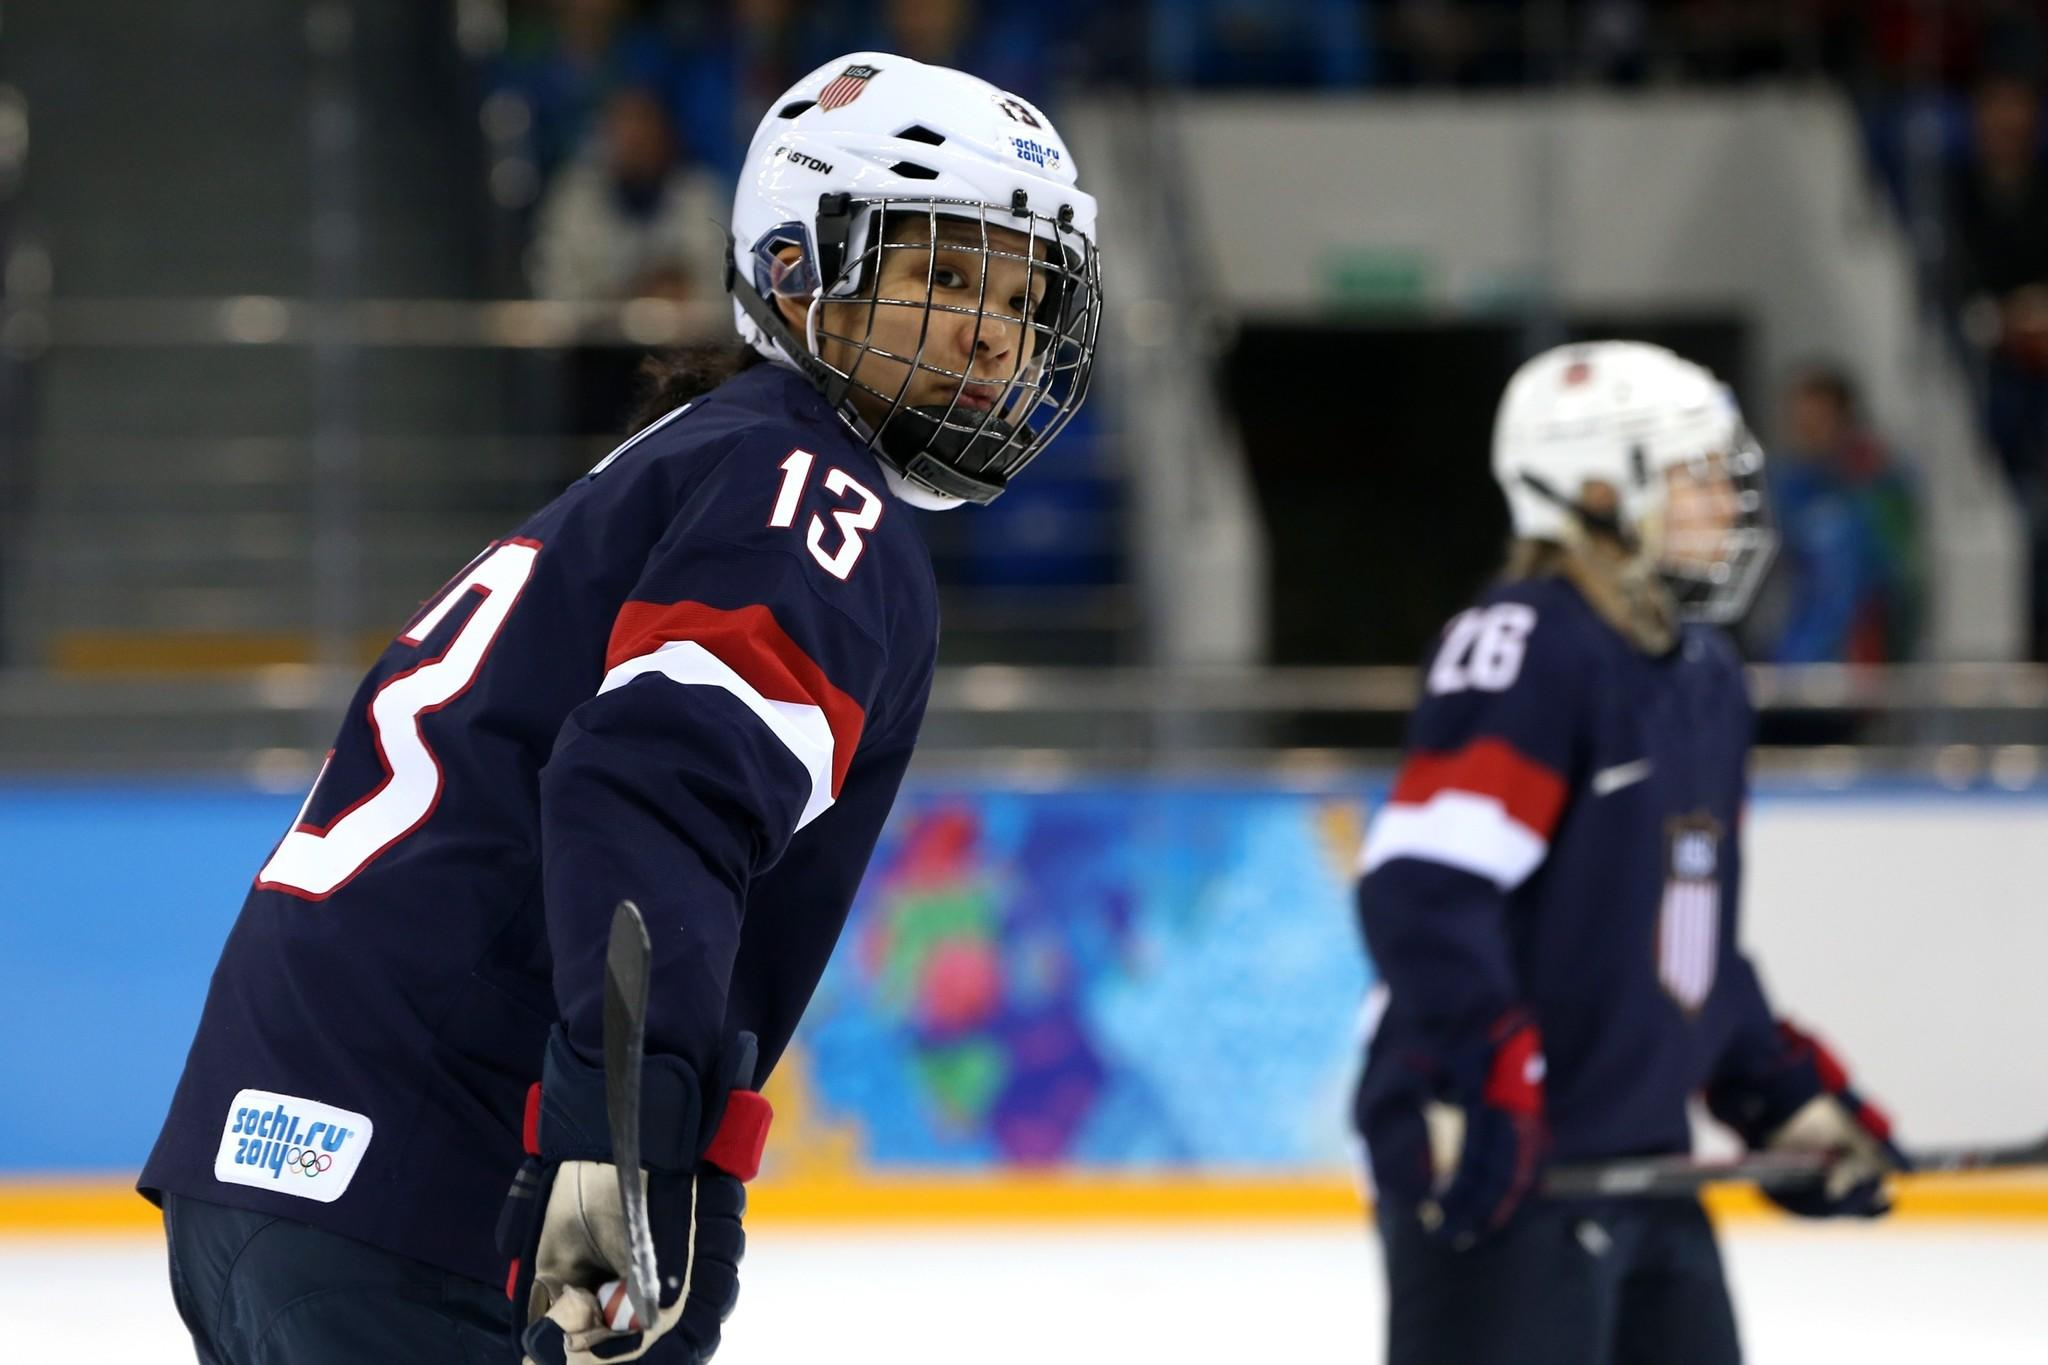 Julie Chu has played in three gold medal games at the Olympics, but has yet to take home the elusive medal. She'll get another try Thursday when the U.S. faces Canada in the final at the Bolshoy Ice Dome at the 2014 Sochi Winter Olympics.